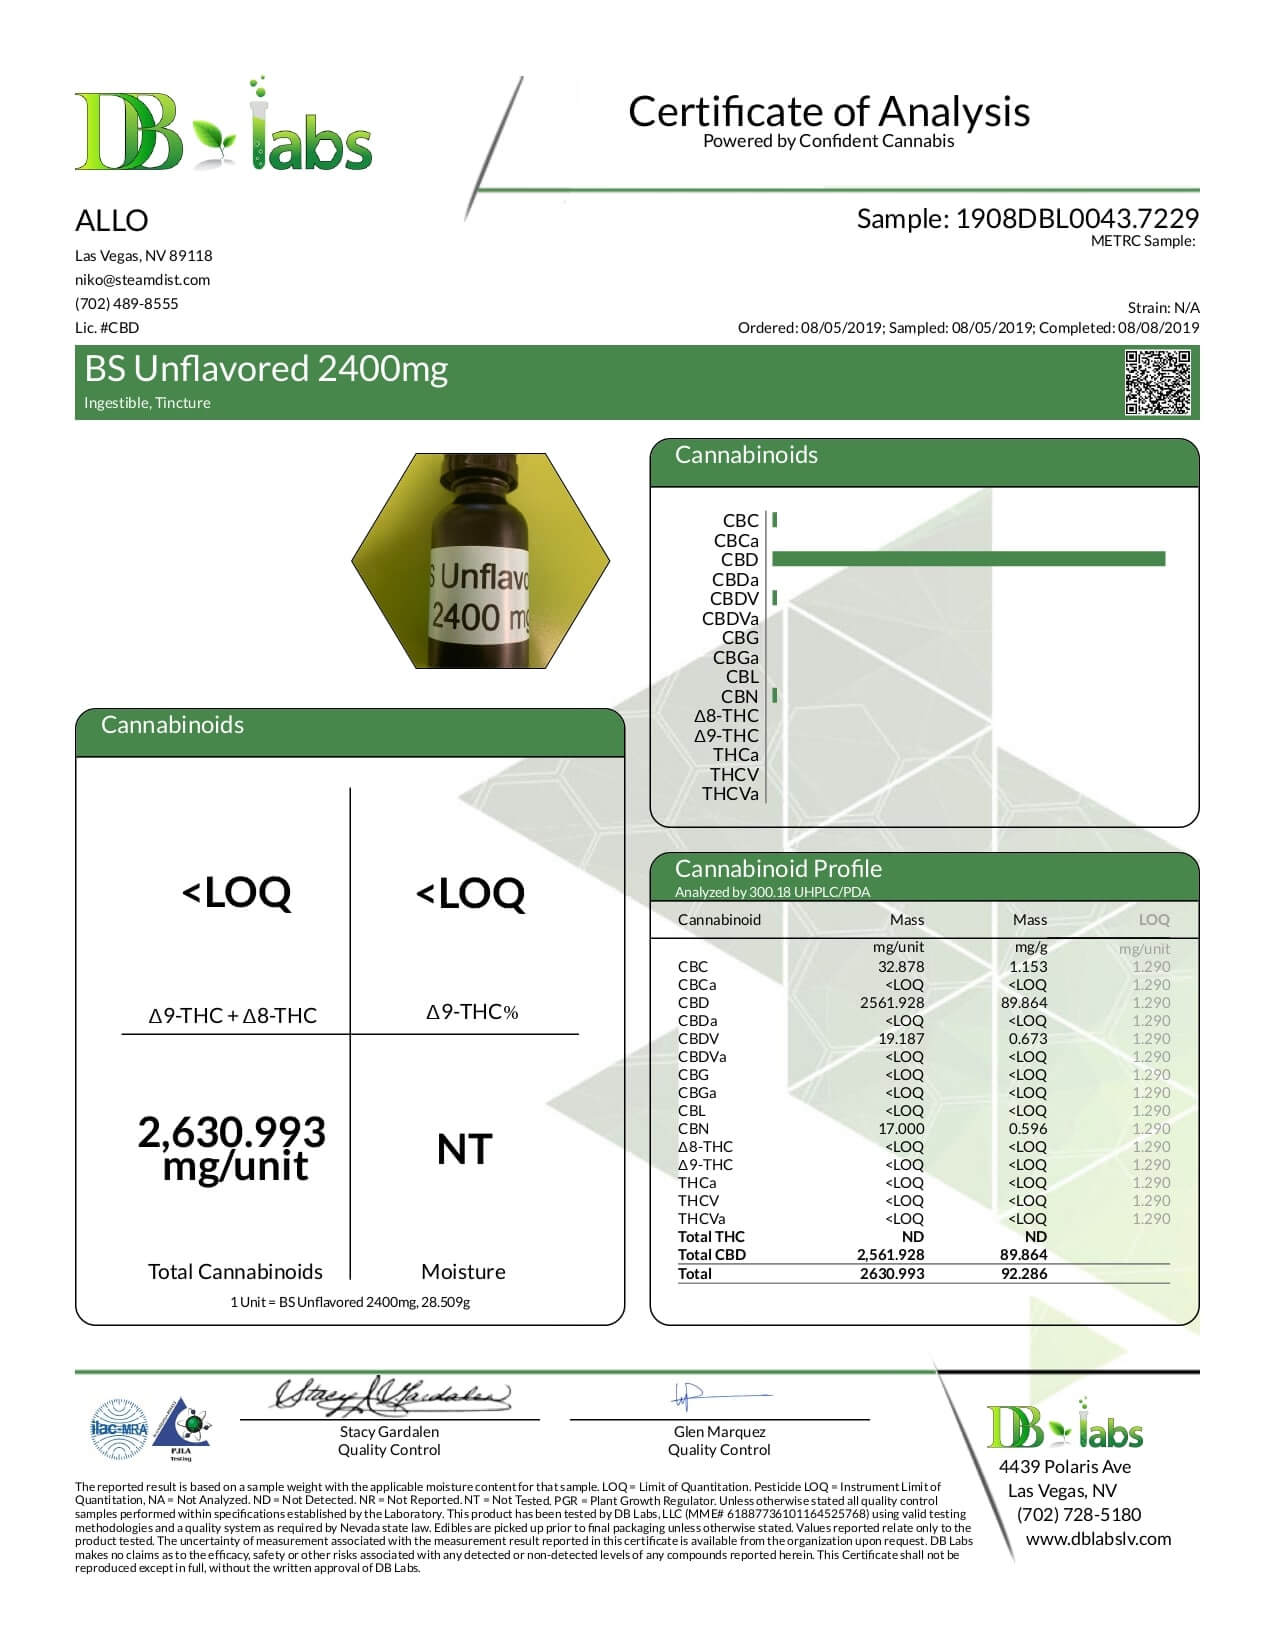 ALLO CBD Tincture Unflavored Lab Report 2400mg